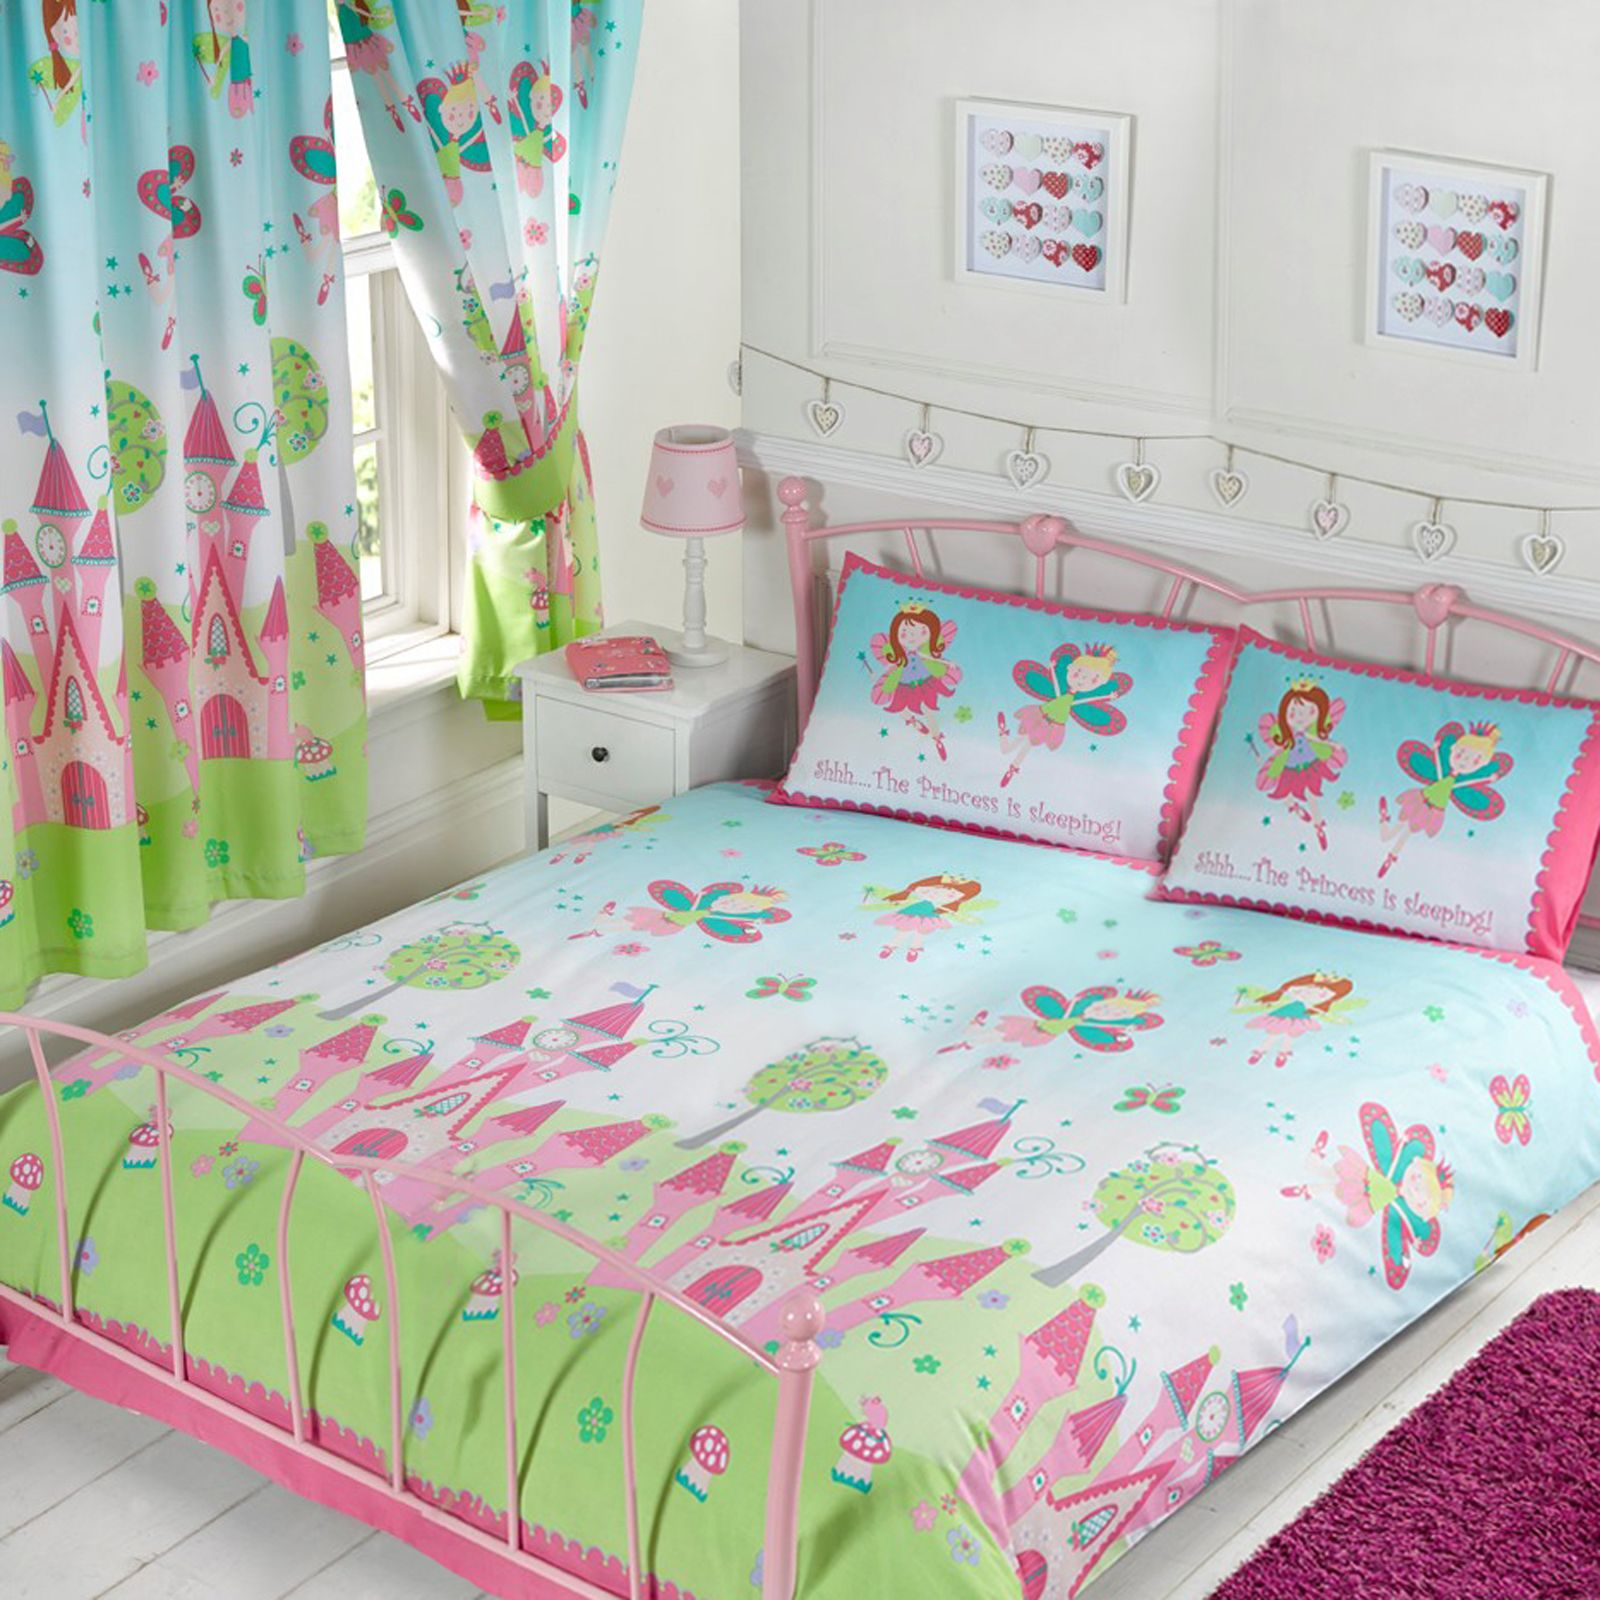 FAIRY PRINCESS SLEEPING DOUBLE DUVET COVER SET NEW GIRLS BEDDING